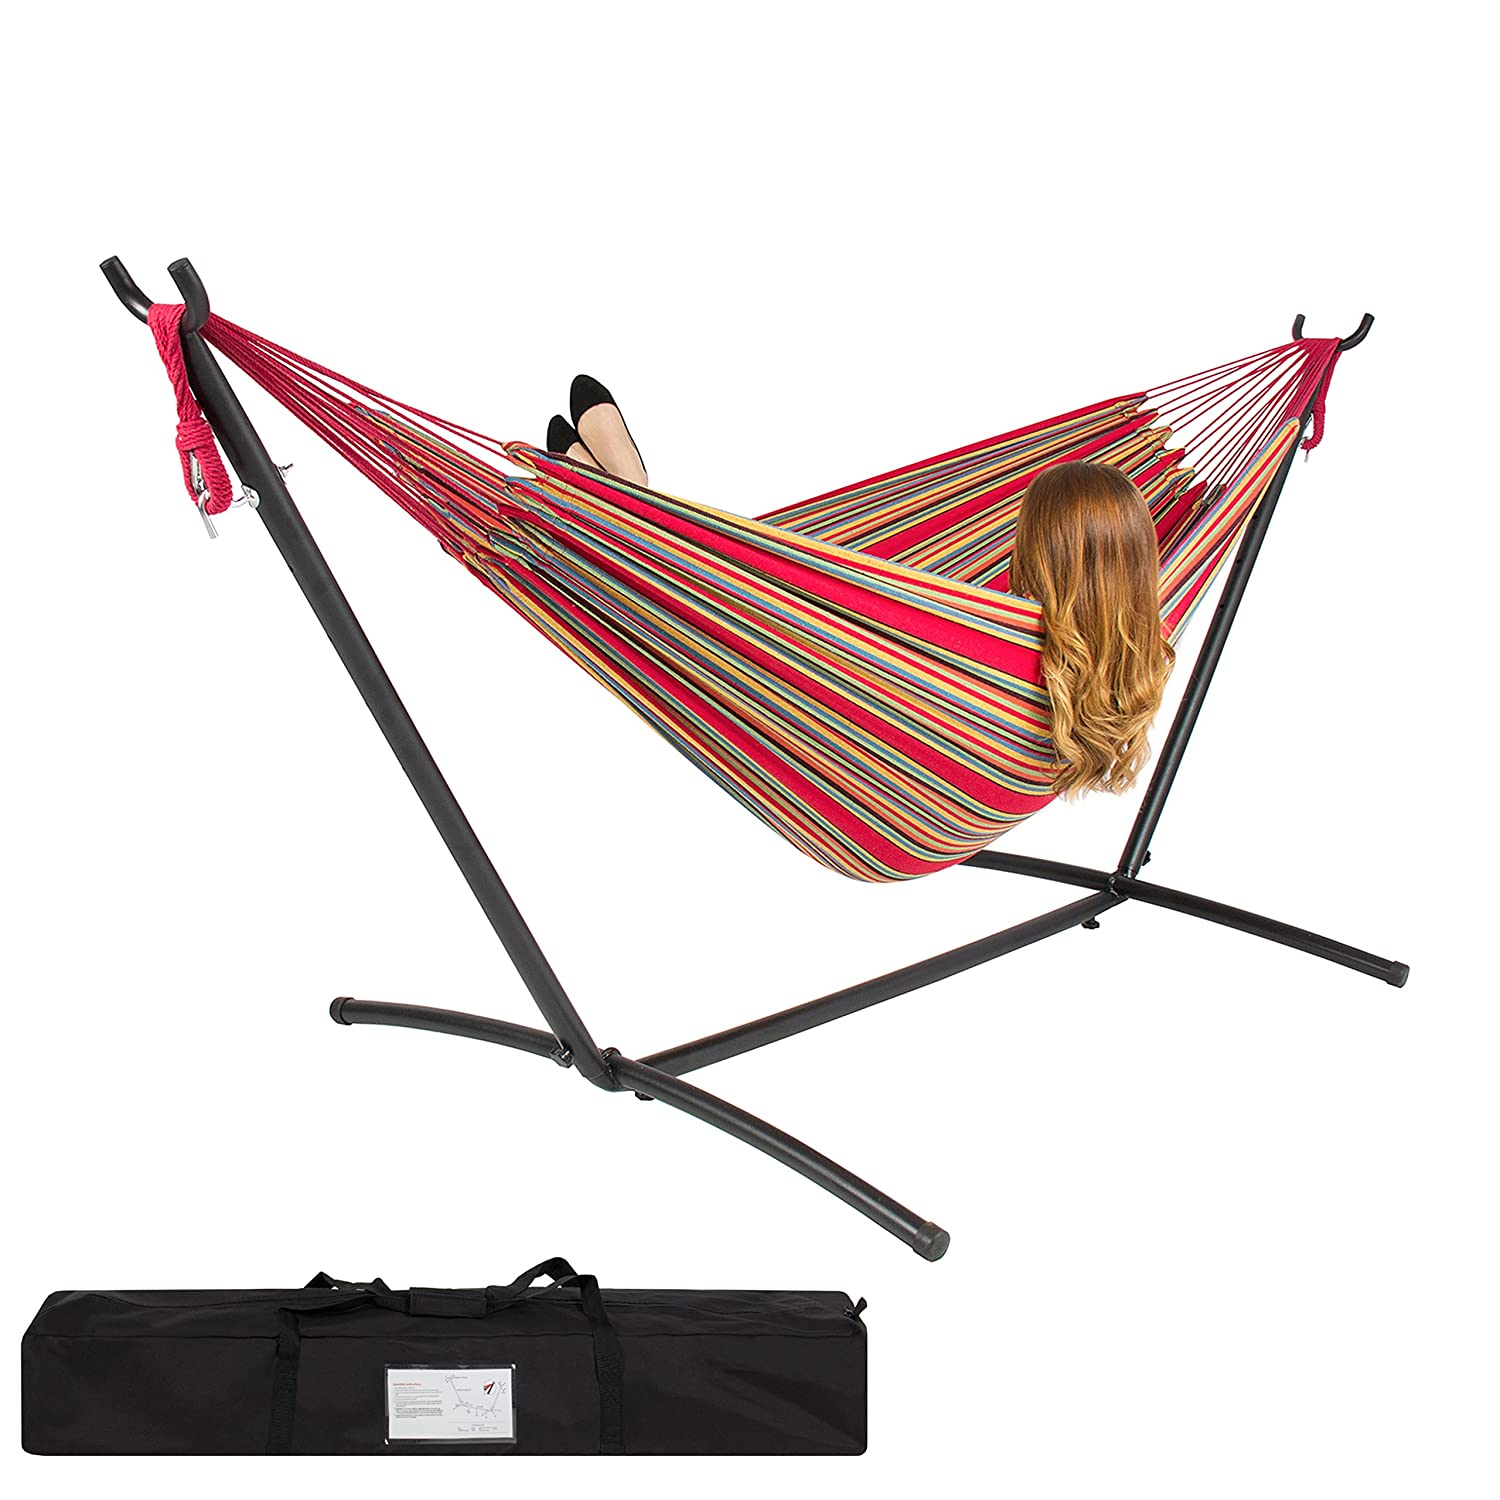 Amazon.com : Best ChoiceProducts Double Hammock with Space Saving Steel  Stand Includes Portable Carrying Case, Red : Patio, Lawn & Garden - Amazon.com : Best ChoiceProducts Double Hammock With Space Saving